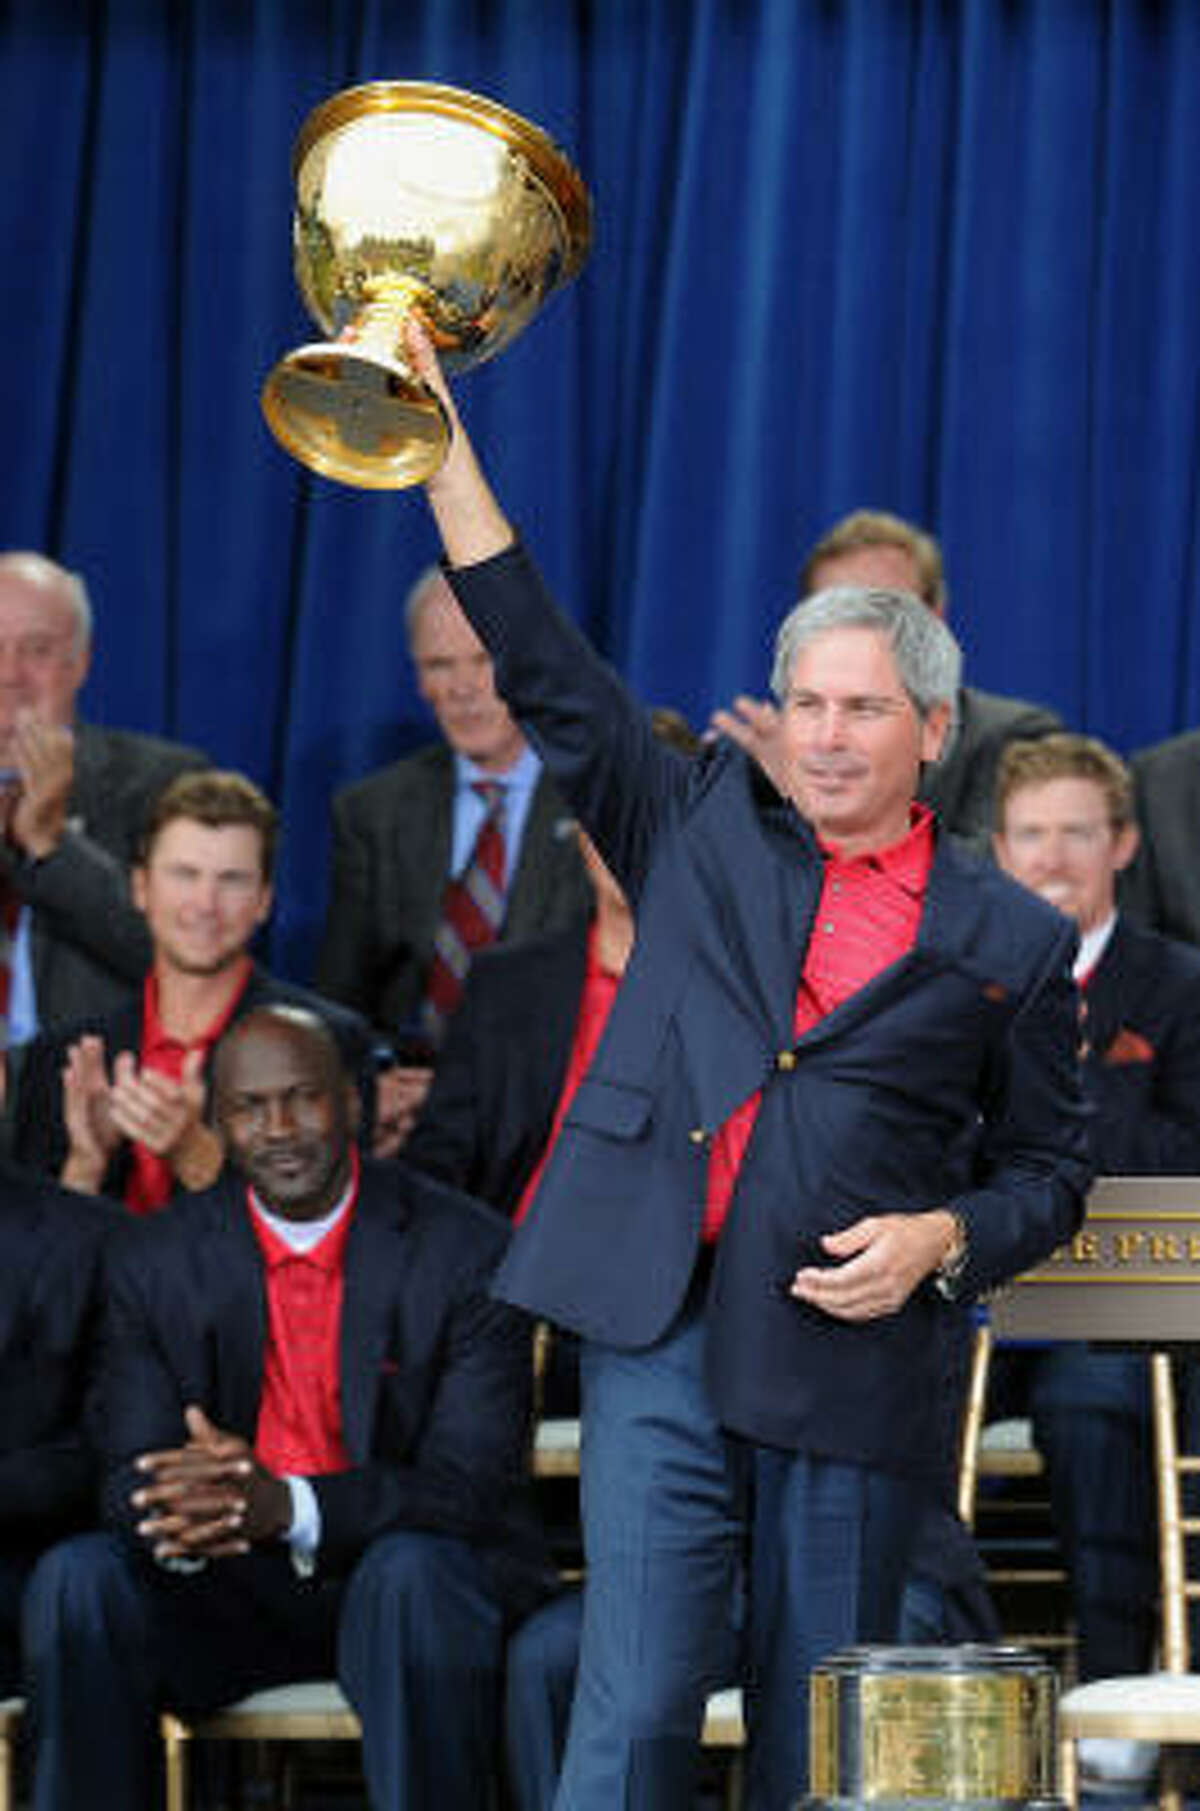 U.S. team captain Fred Couples raises the Presidents Cup trophy as the Americans celebrate their win on Sunday at Harding Park Golf Course in San Francisco.